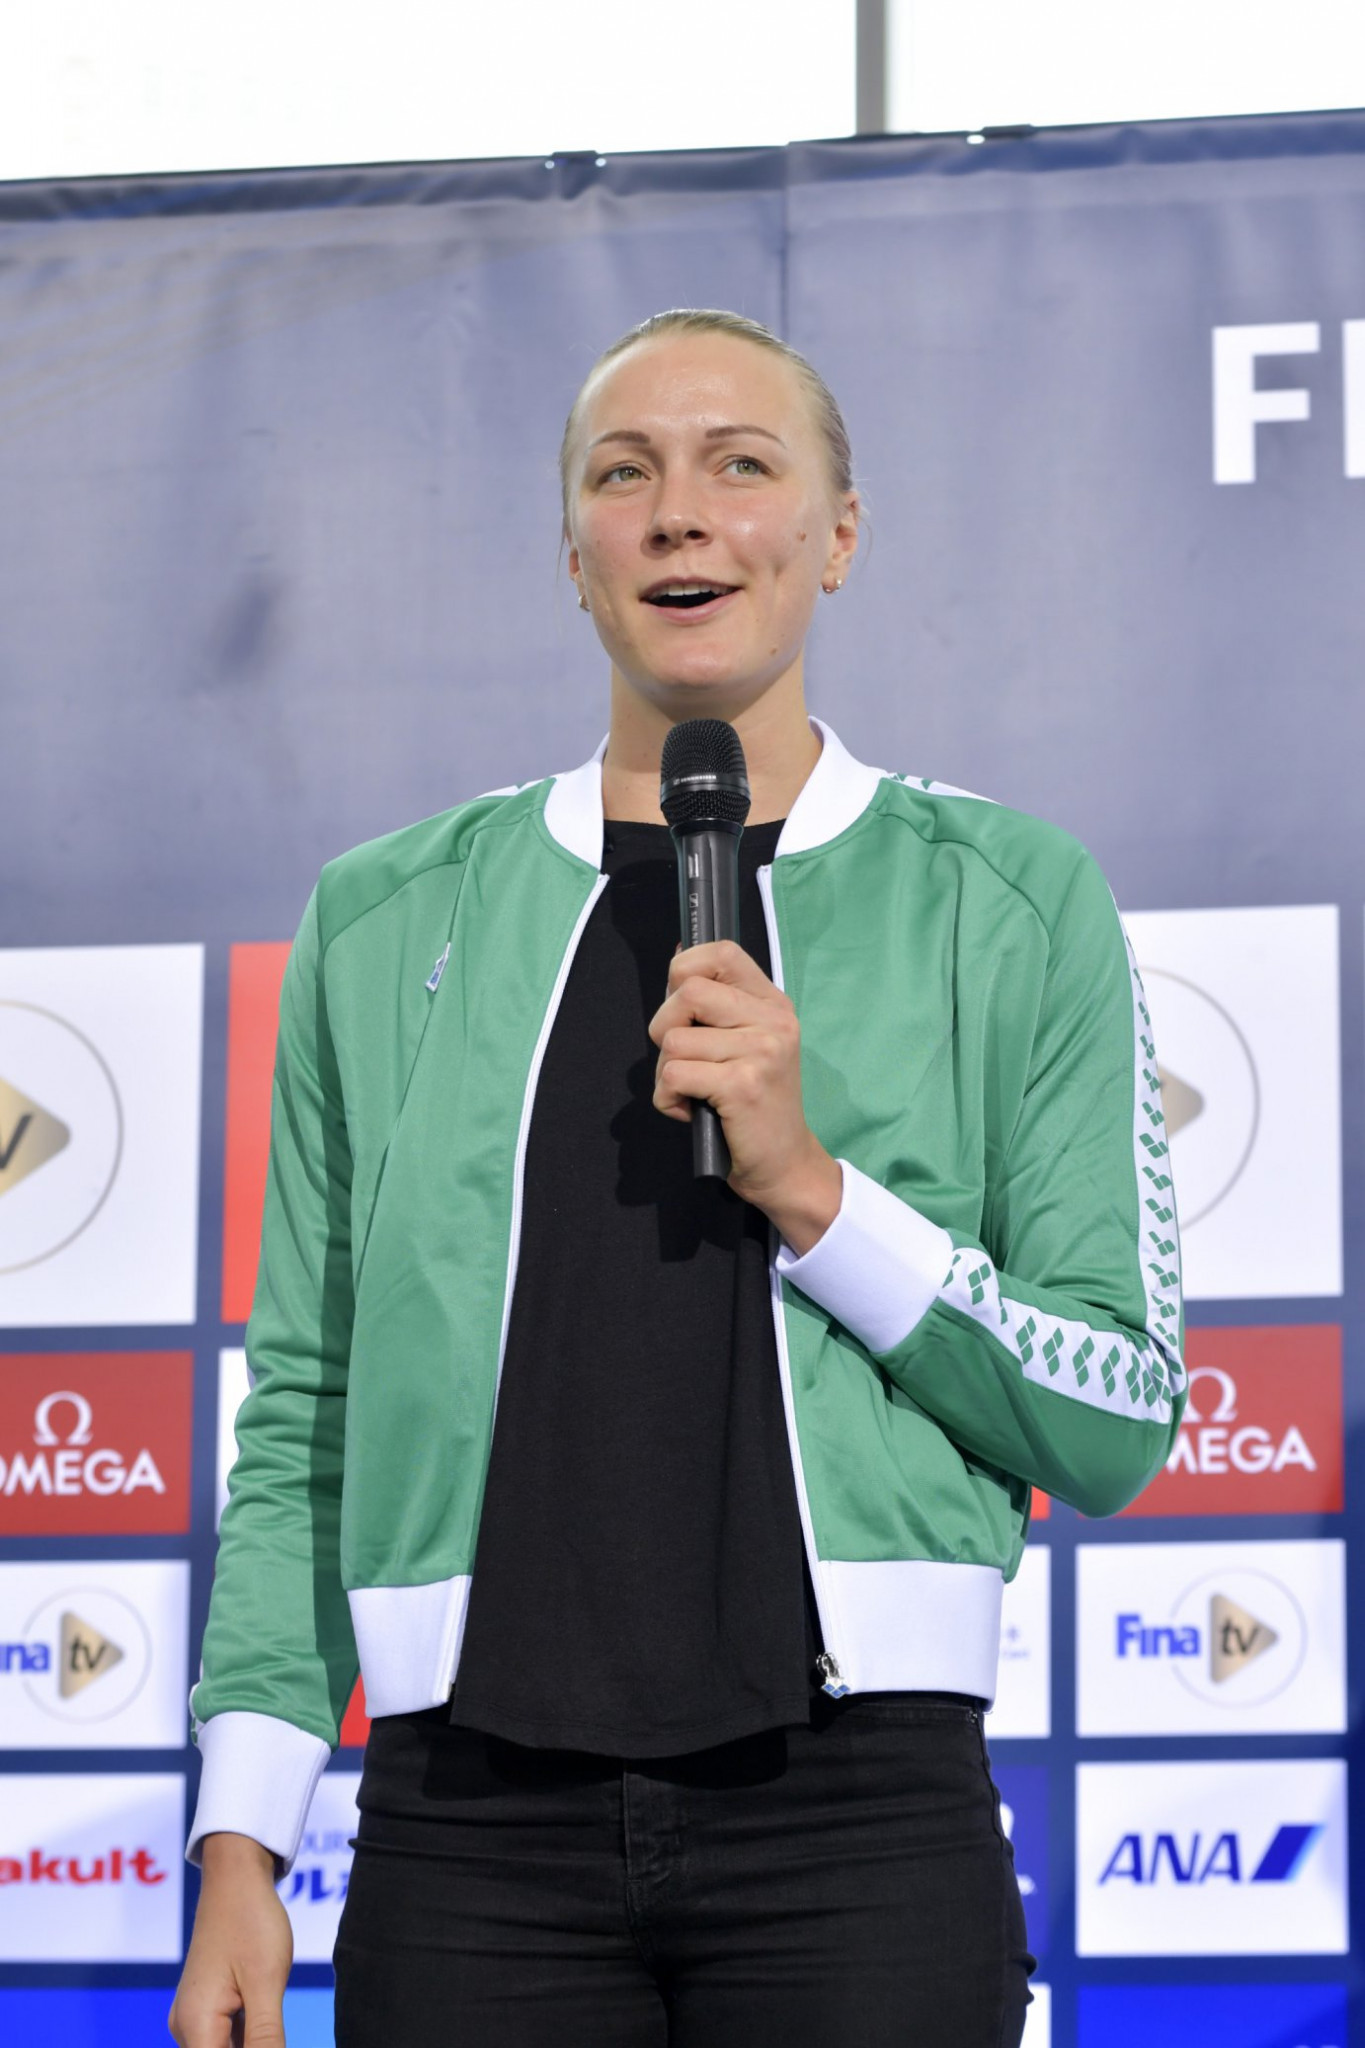 Sweden's Swimming World Cup leader Sarah Sjostrum is ready to go faster than ever in Tokyo ©FINA